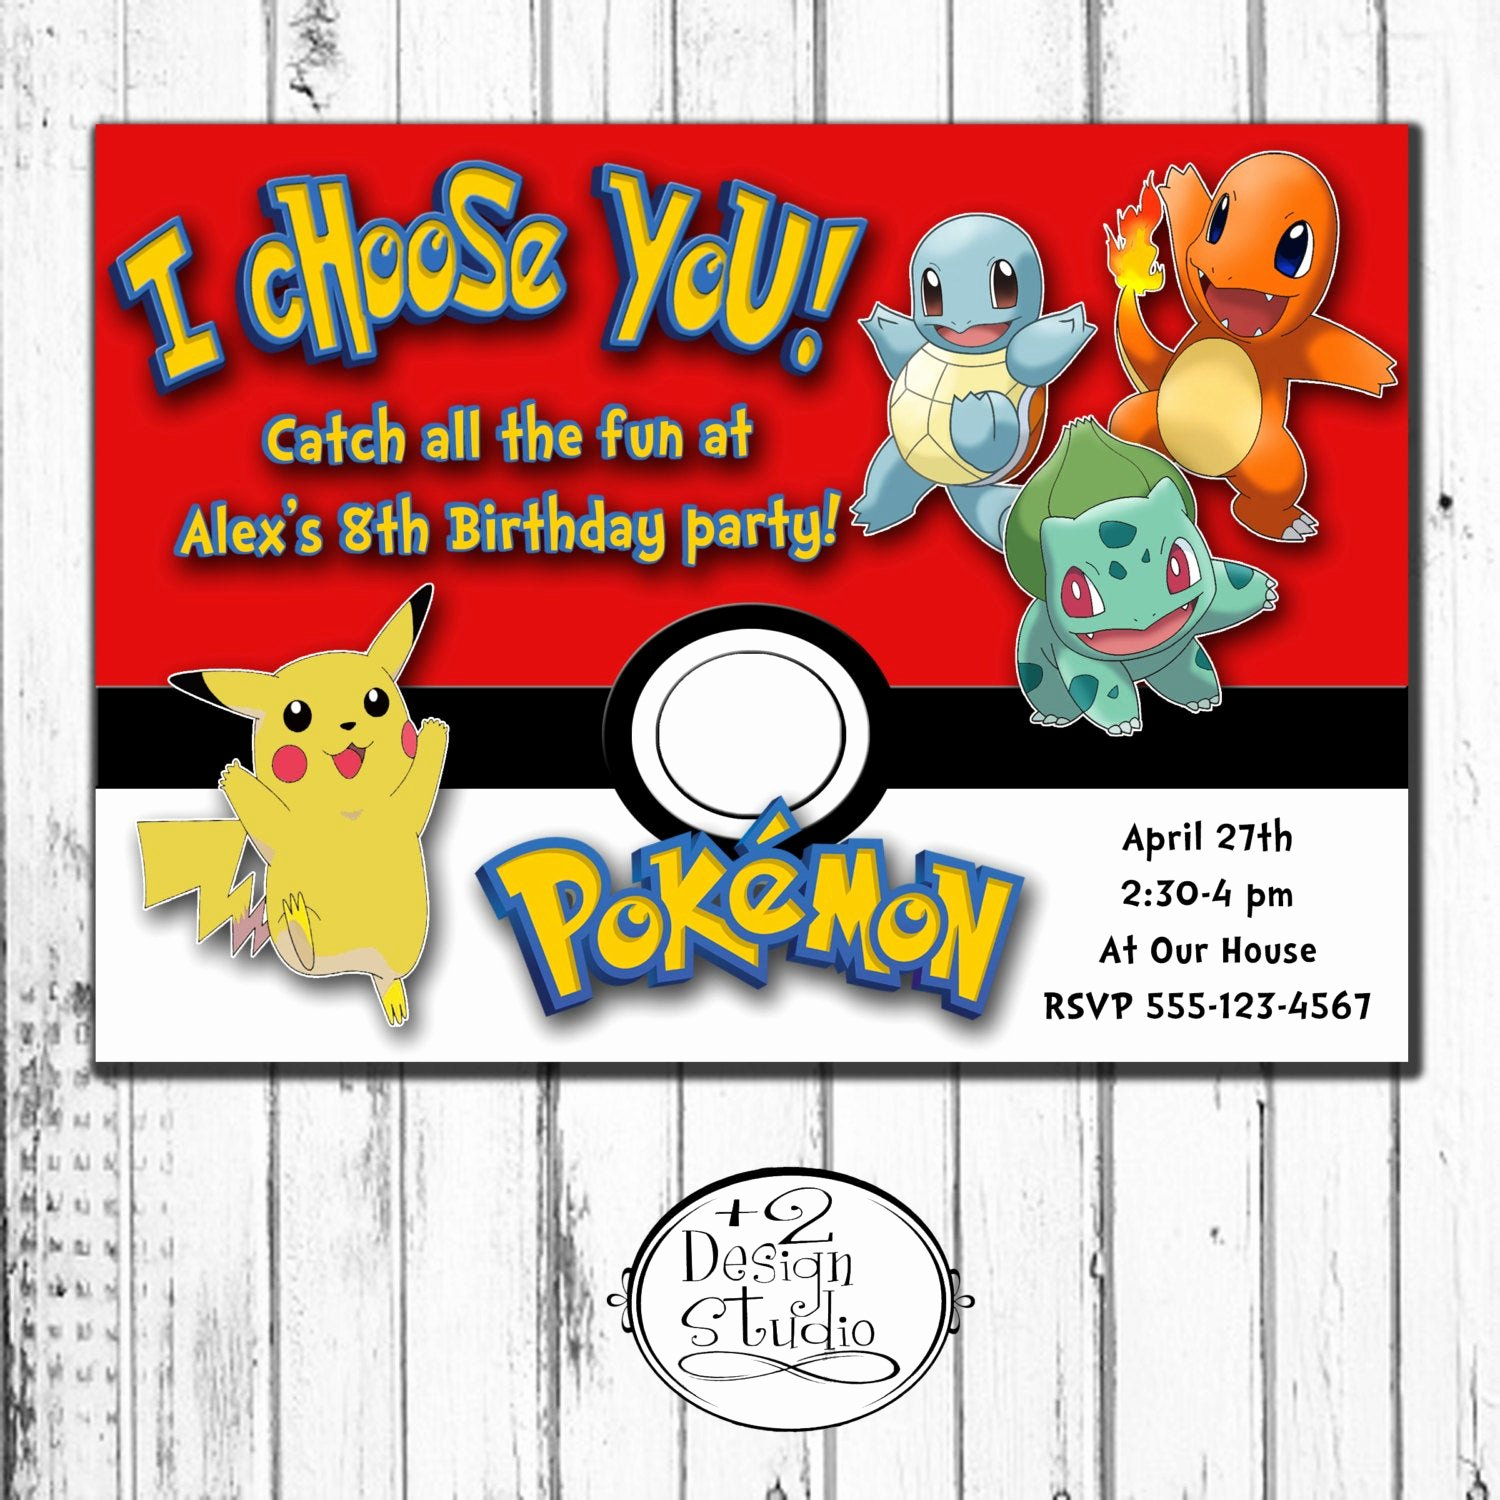 Pokemon Card Birthday Invitation Luxury I Choose You Pokemon Birthday Invitation by Kccreativedesign